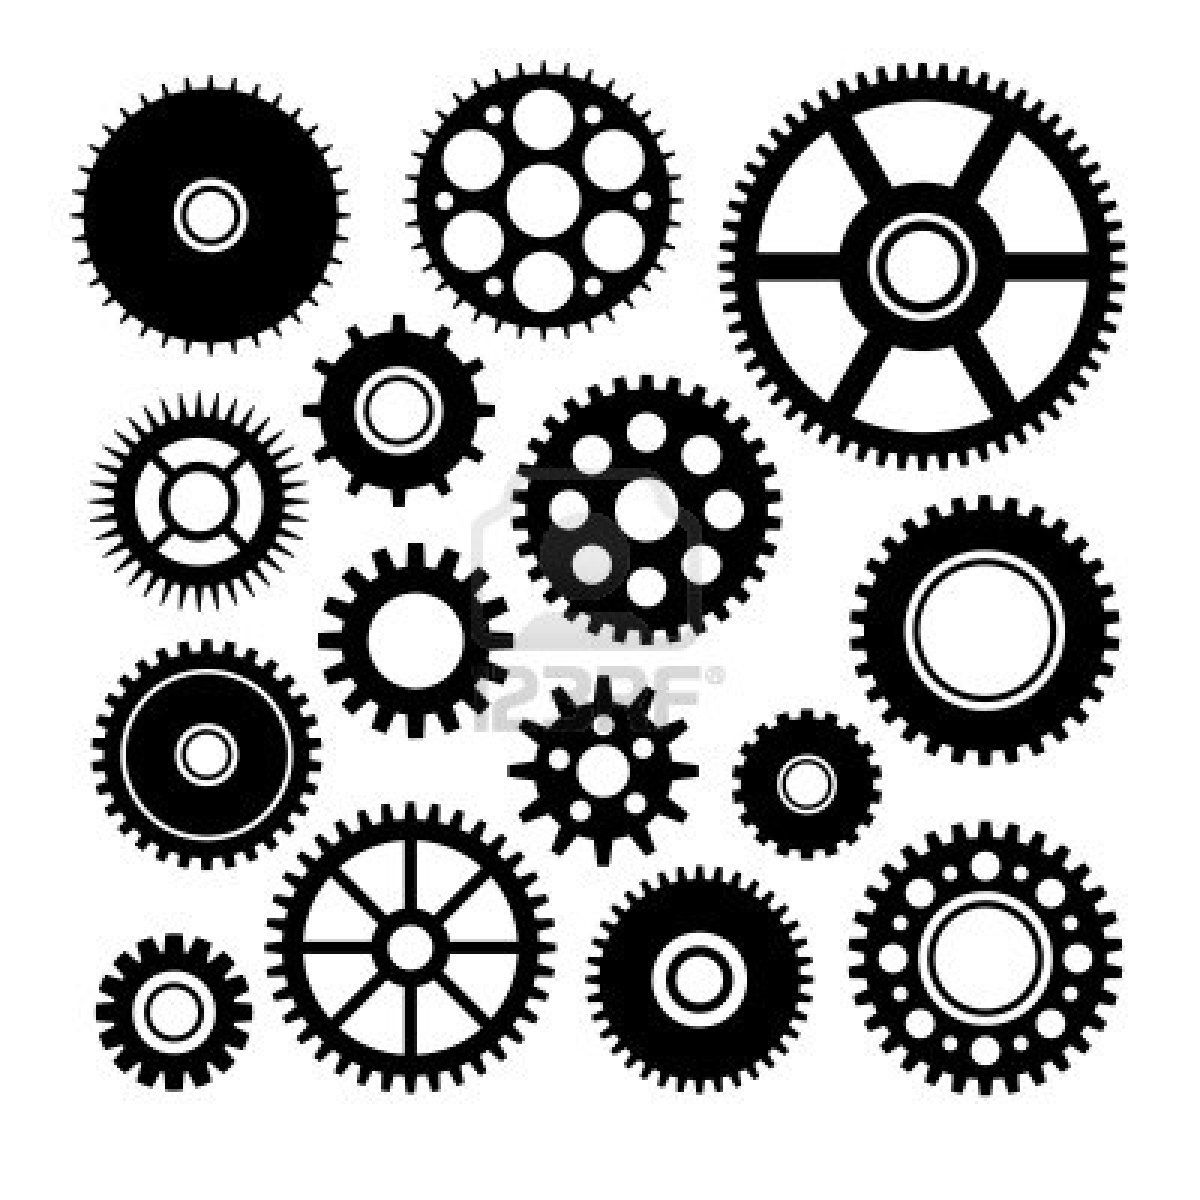 Stock clockwork drawing steampunk. Gear clipart vector art